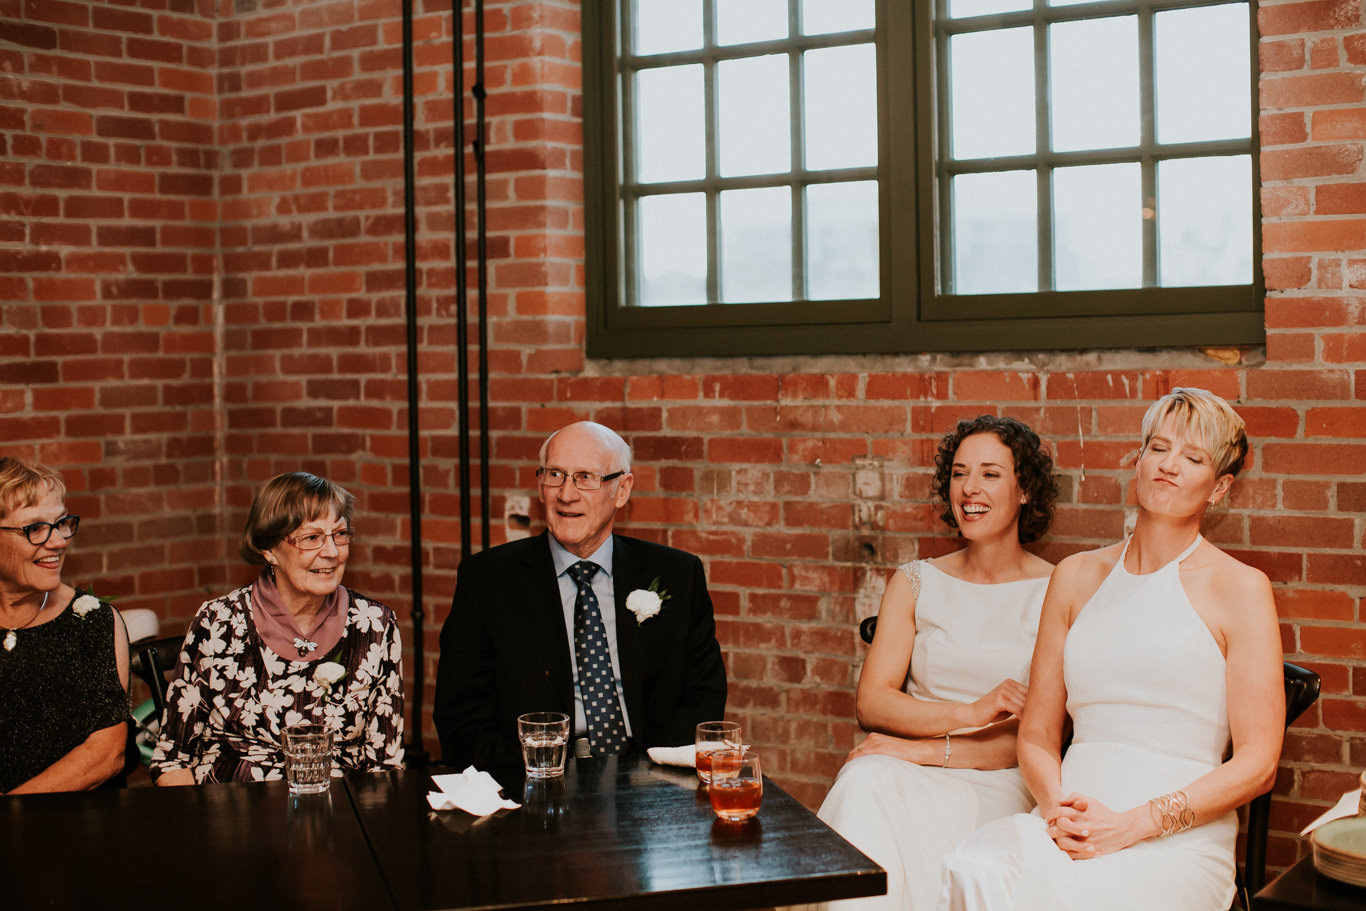 Lindsay-and-Heather-Charbar-Restaurant-Wedding-in-Calgary-163